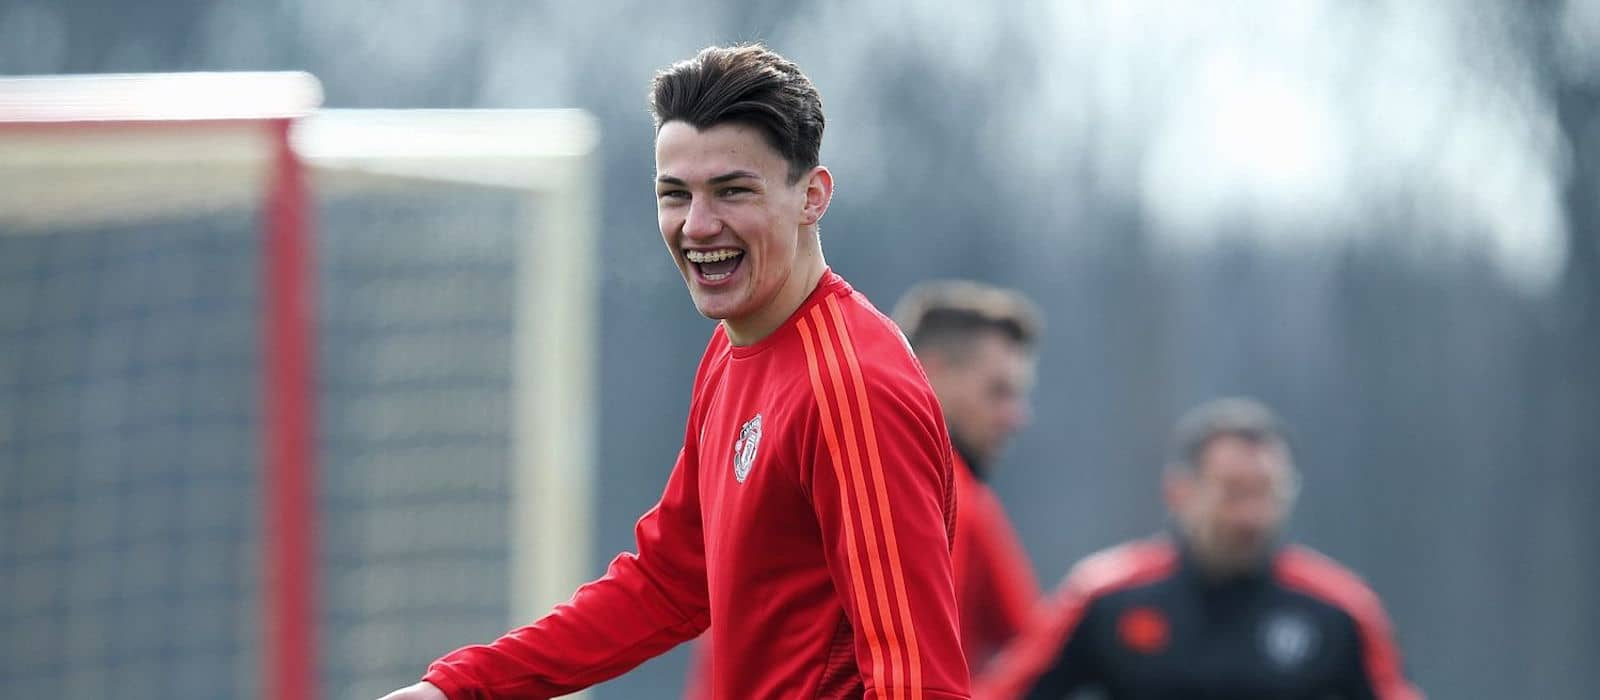 Regan Poole reflects on 'incredible' first season at Manchester United